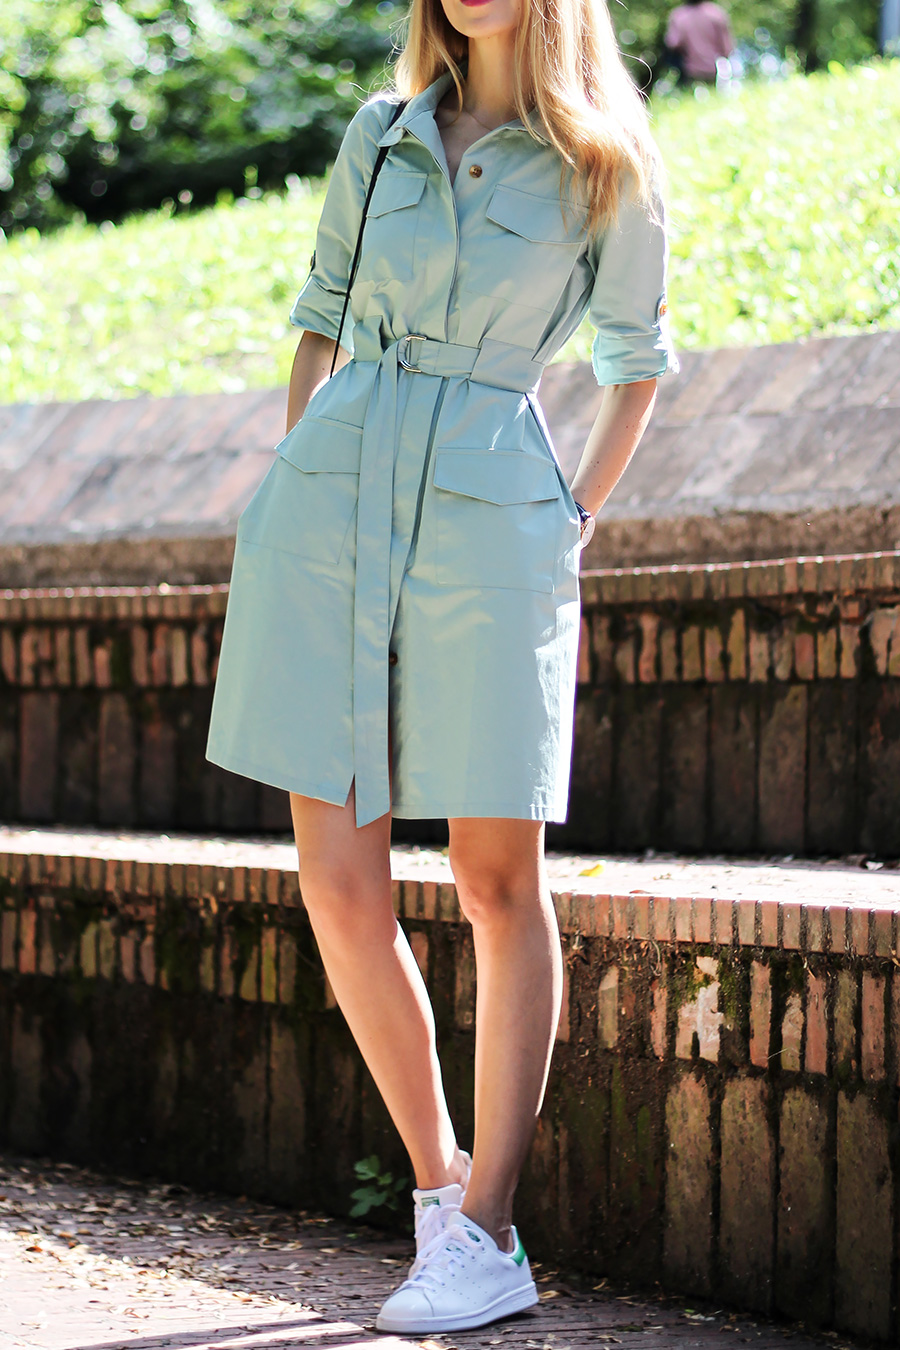 Belted shirt dress and Adidas Stan Smith sneakers, casual summer outfit